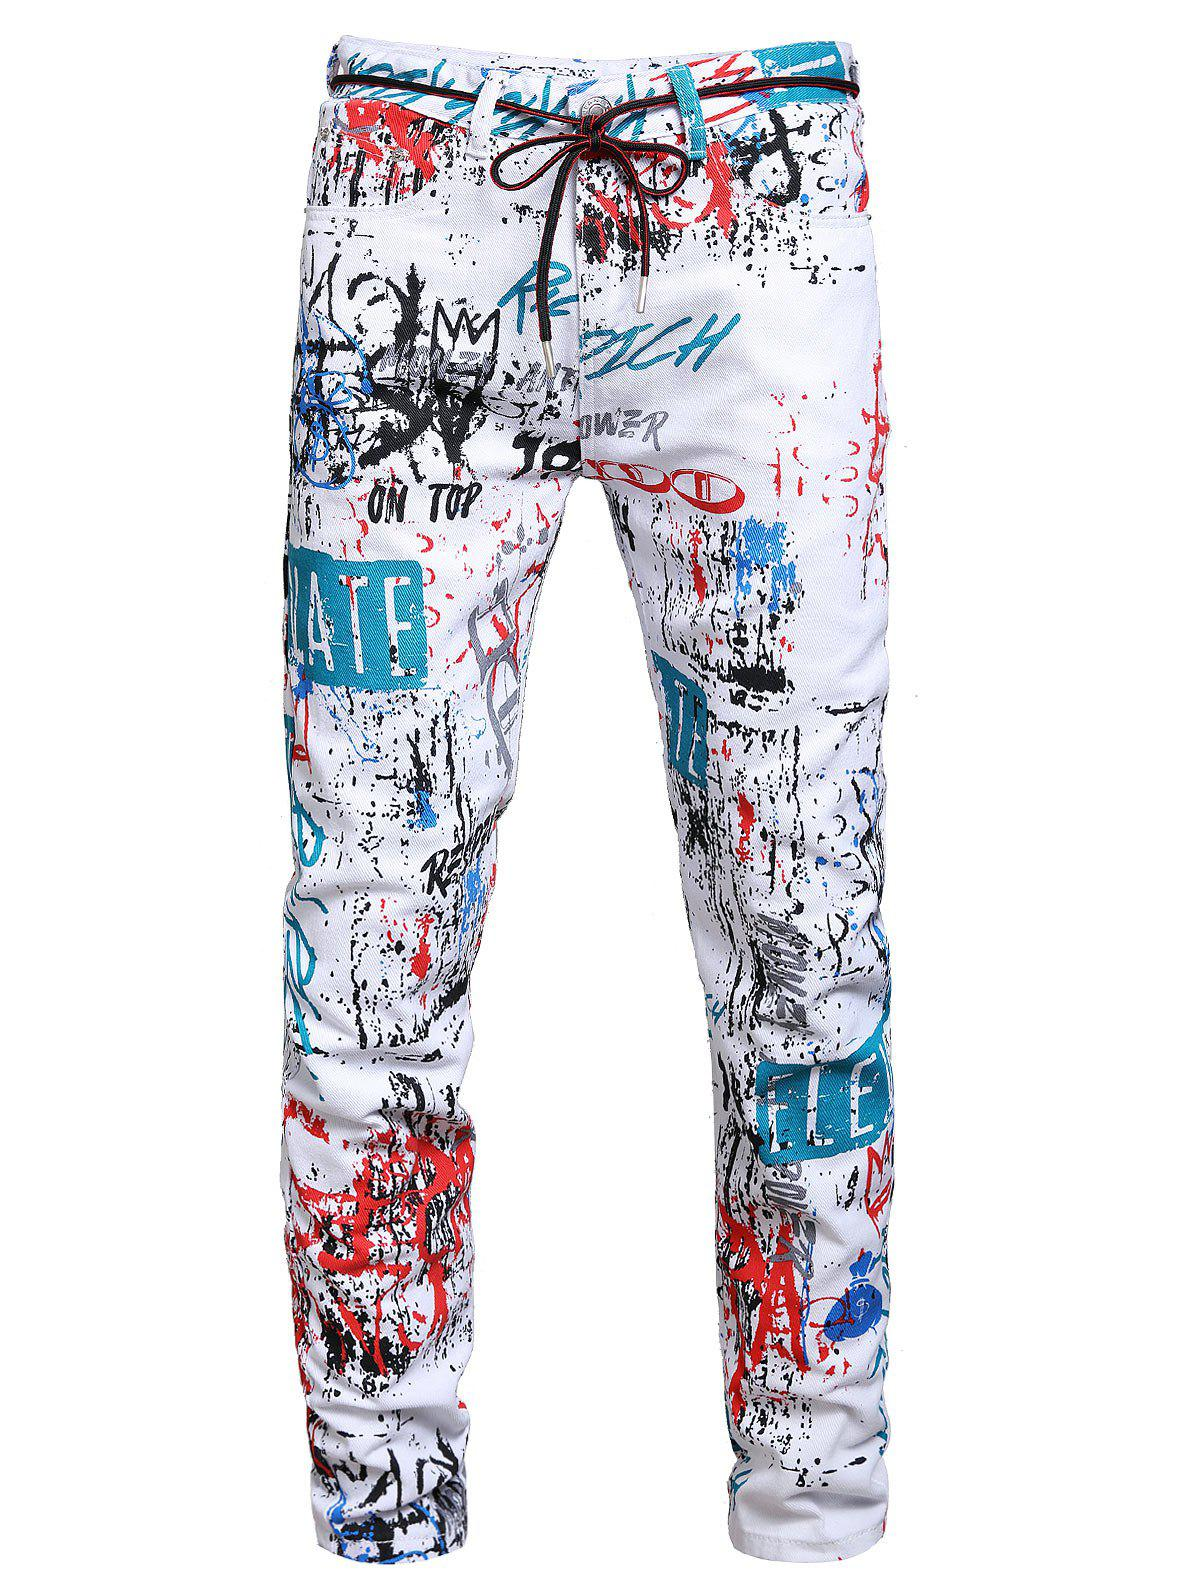 Long Graffiti Painting Allover Print Jeans - multicolor A 36